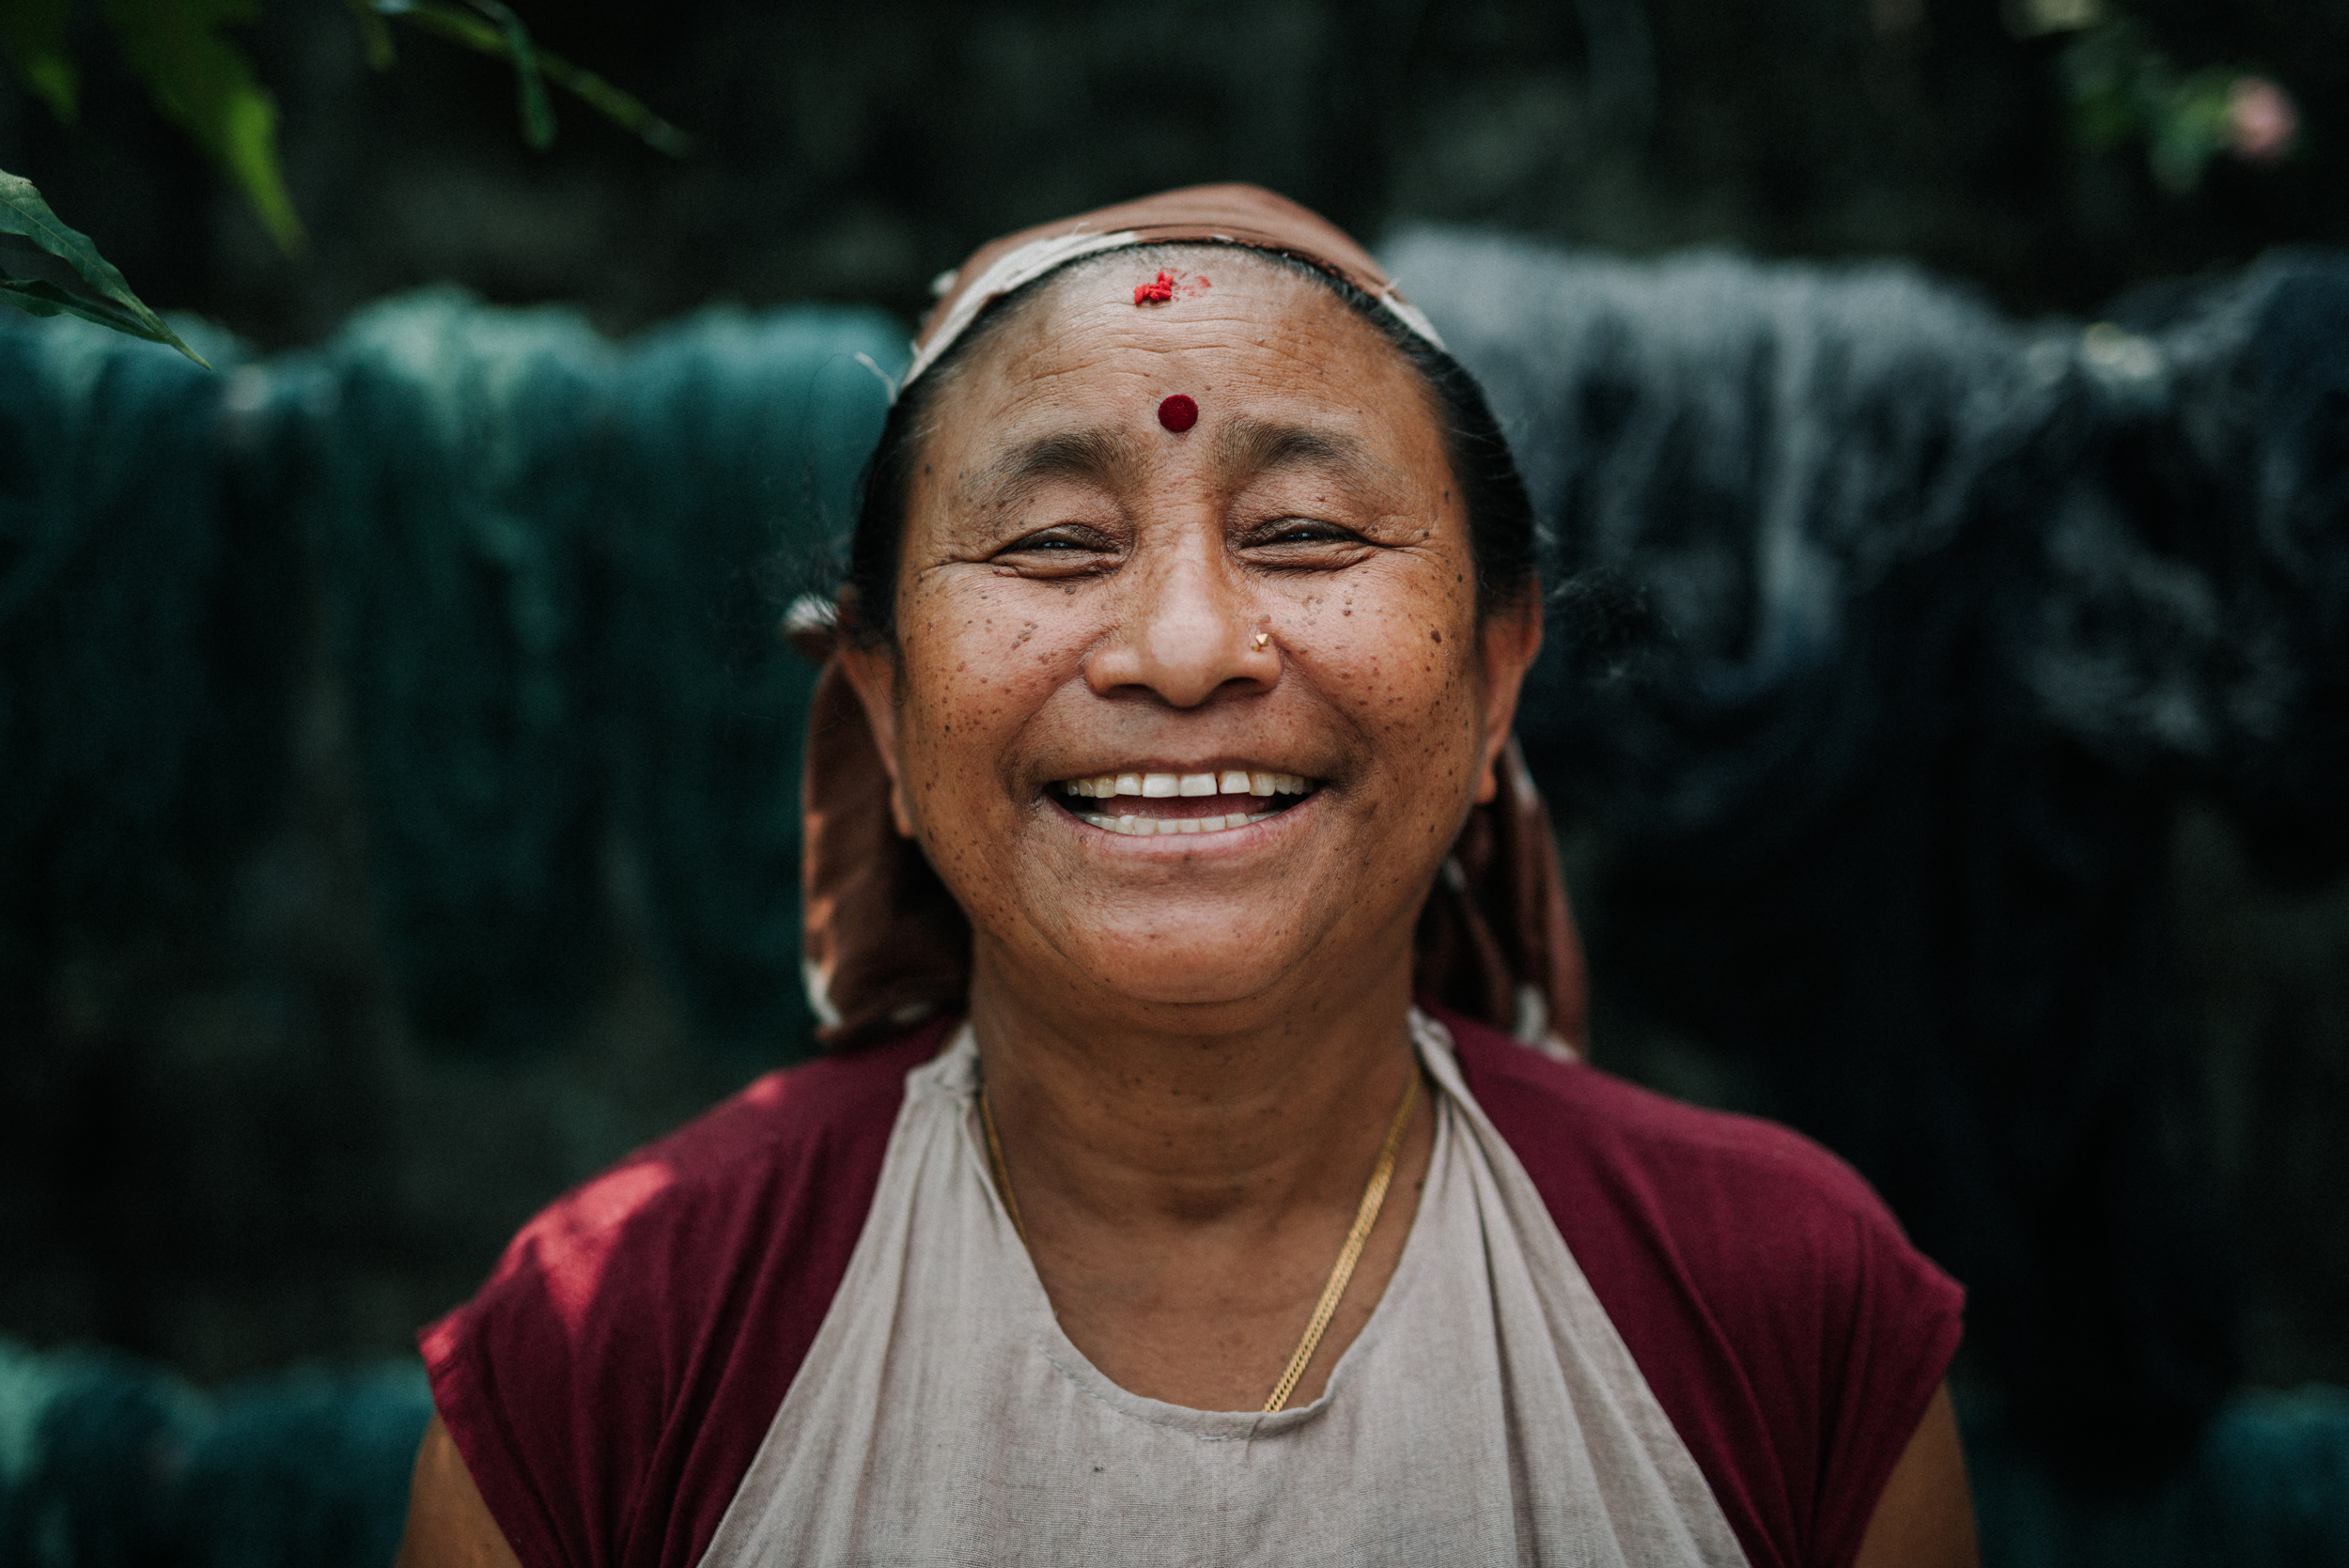 Nepal_FairTrade_Muni_2019_TaraShupe_Photography_DSC_4655-WEB.jpg